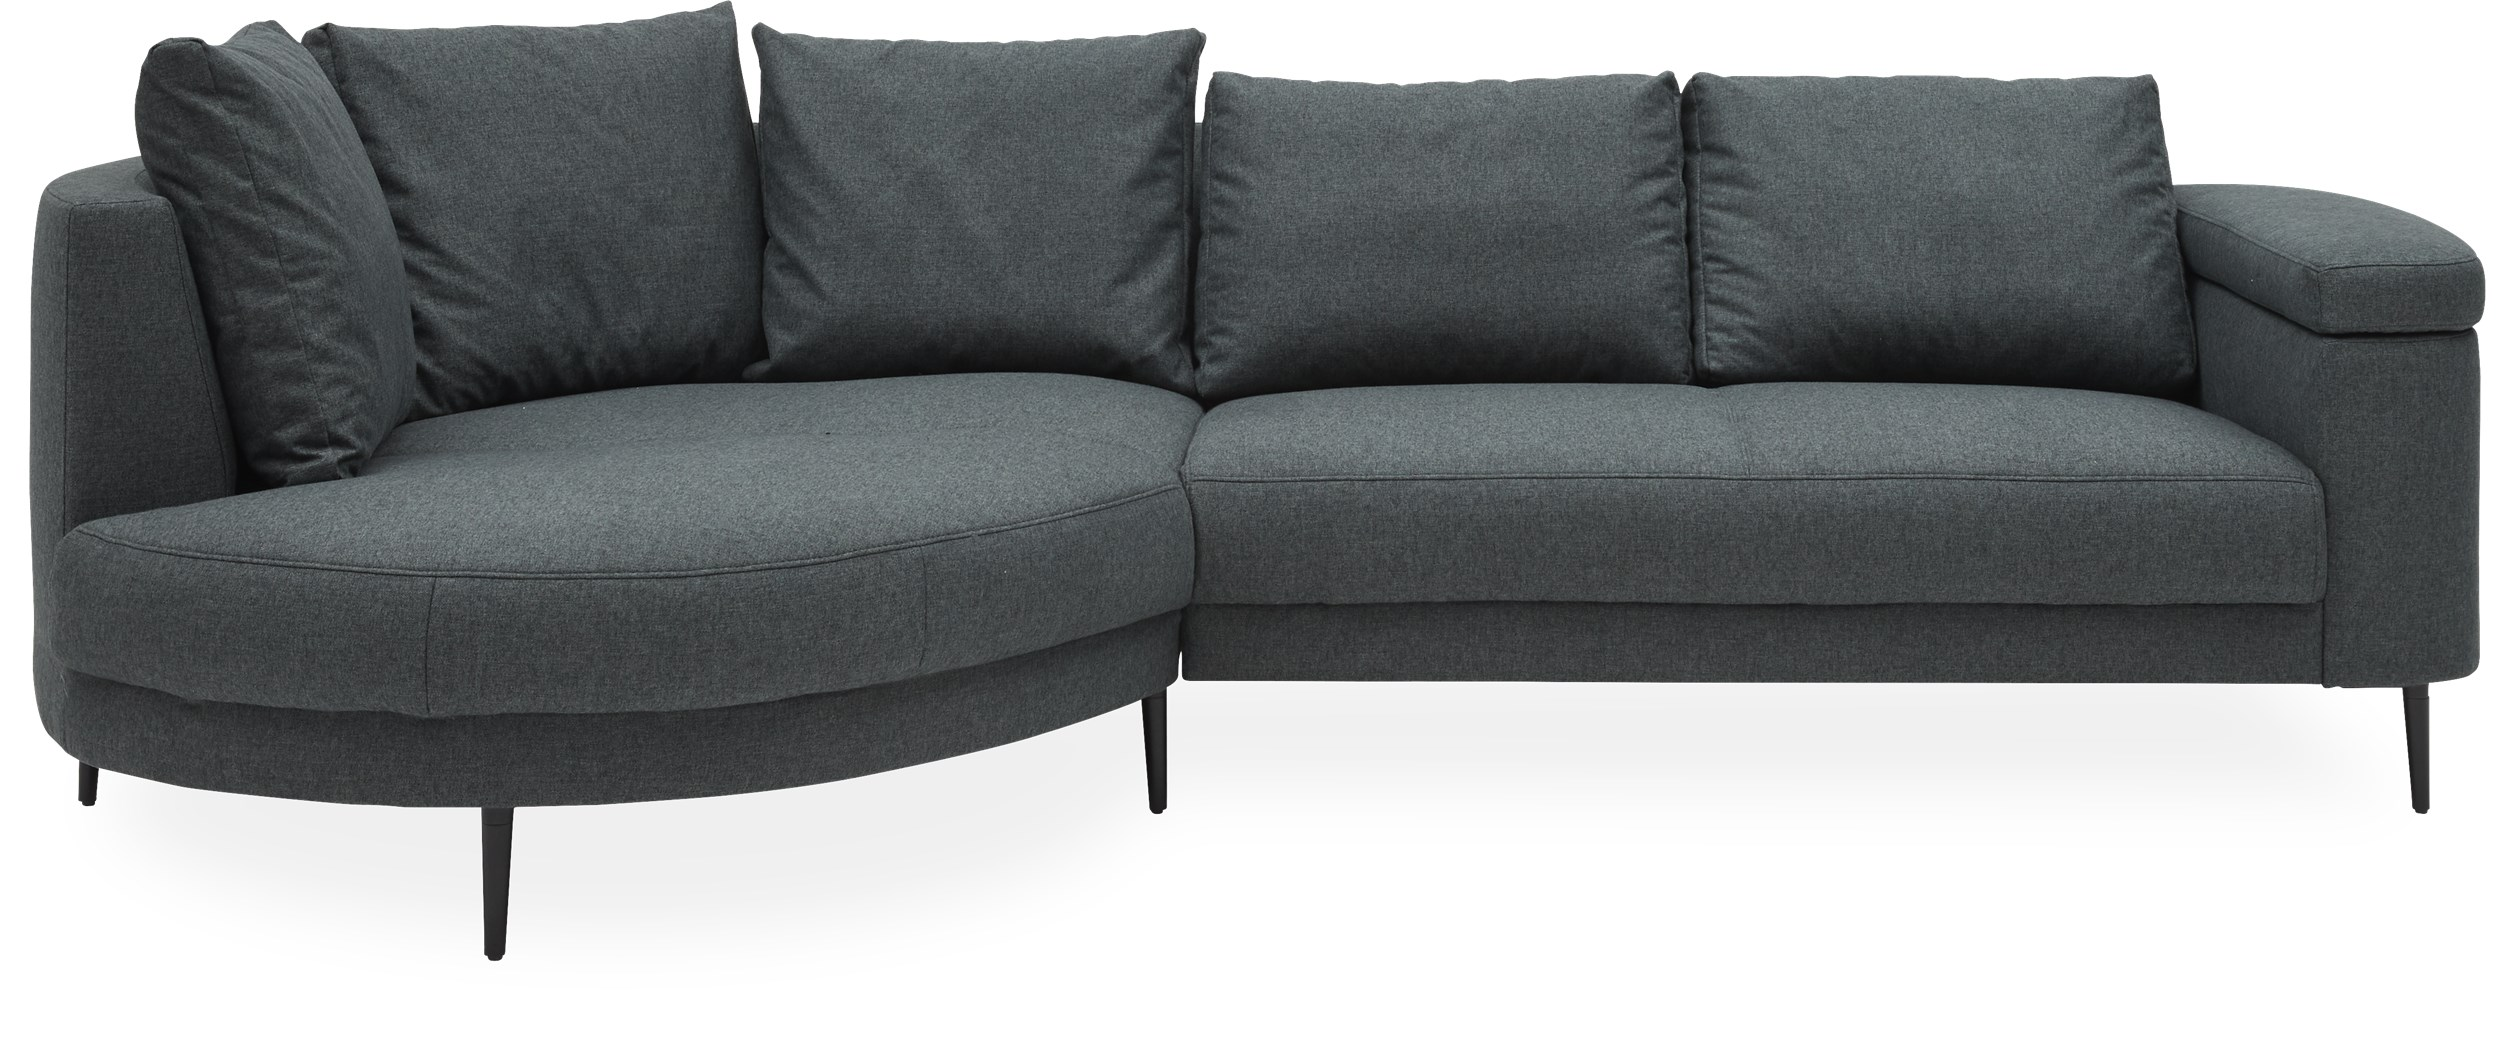 Monza Sofa med chaiselong - Firenze 0151 Steel grey stof og ben i sort metal